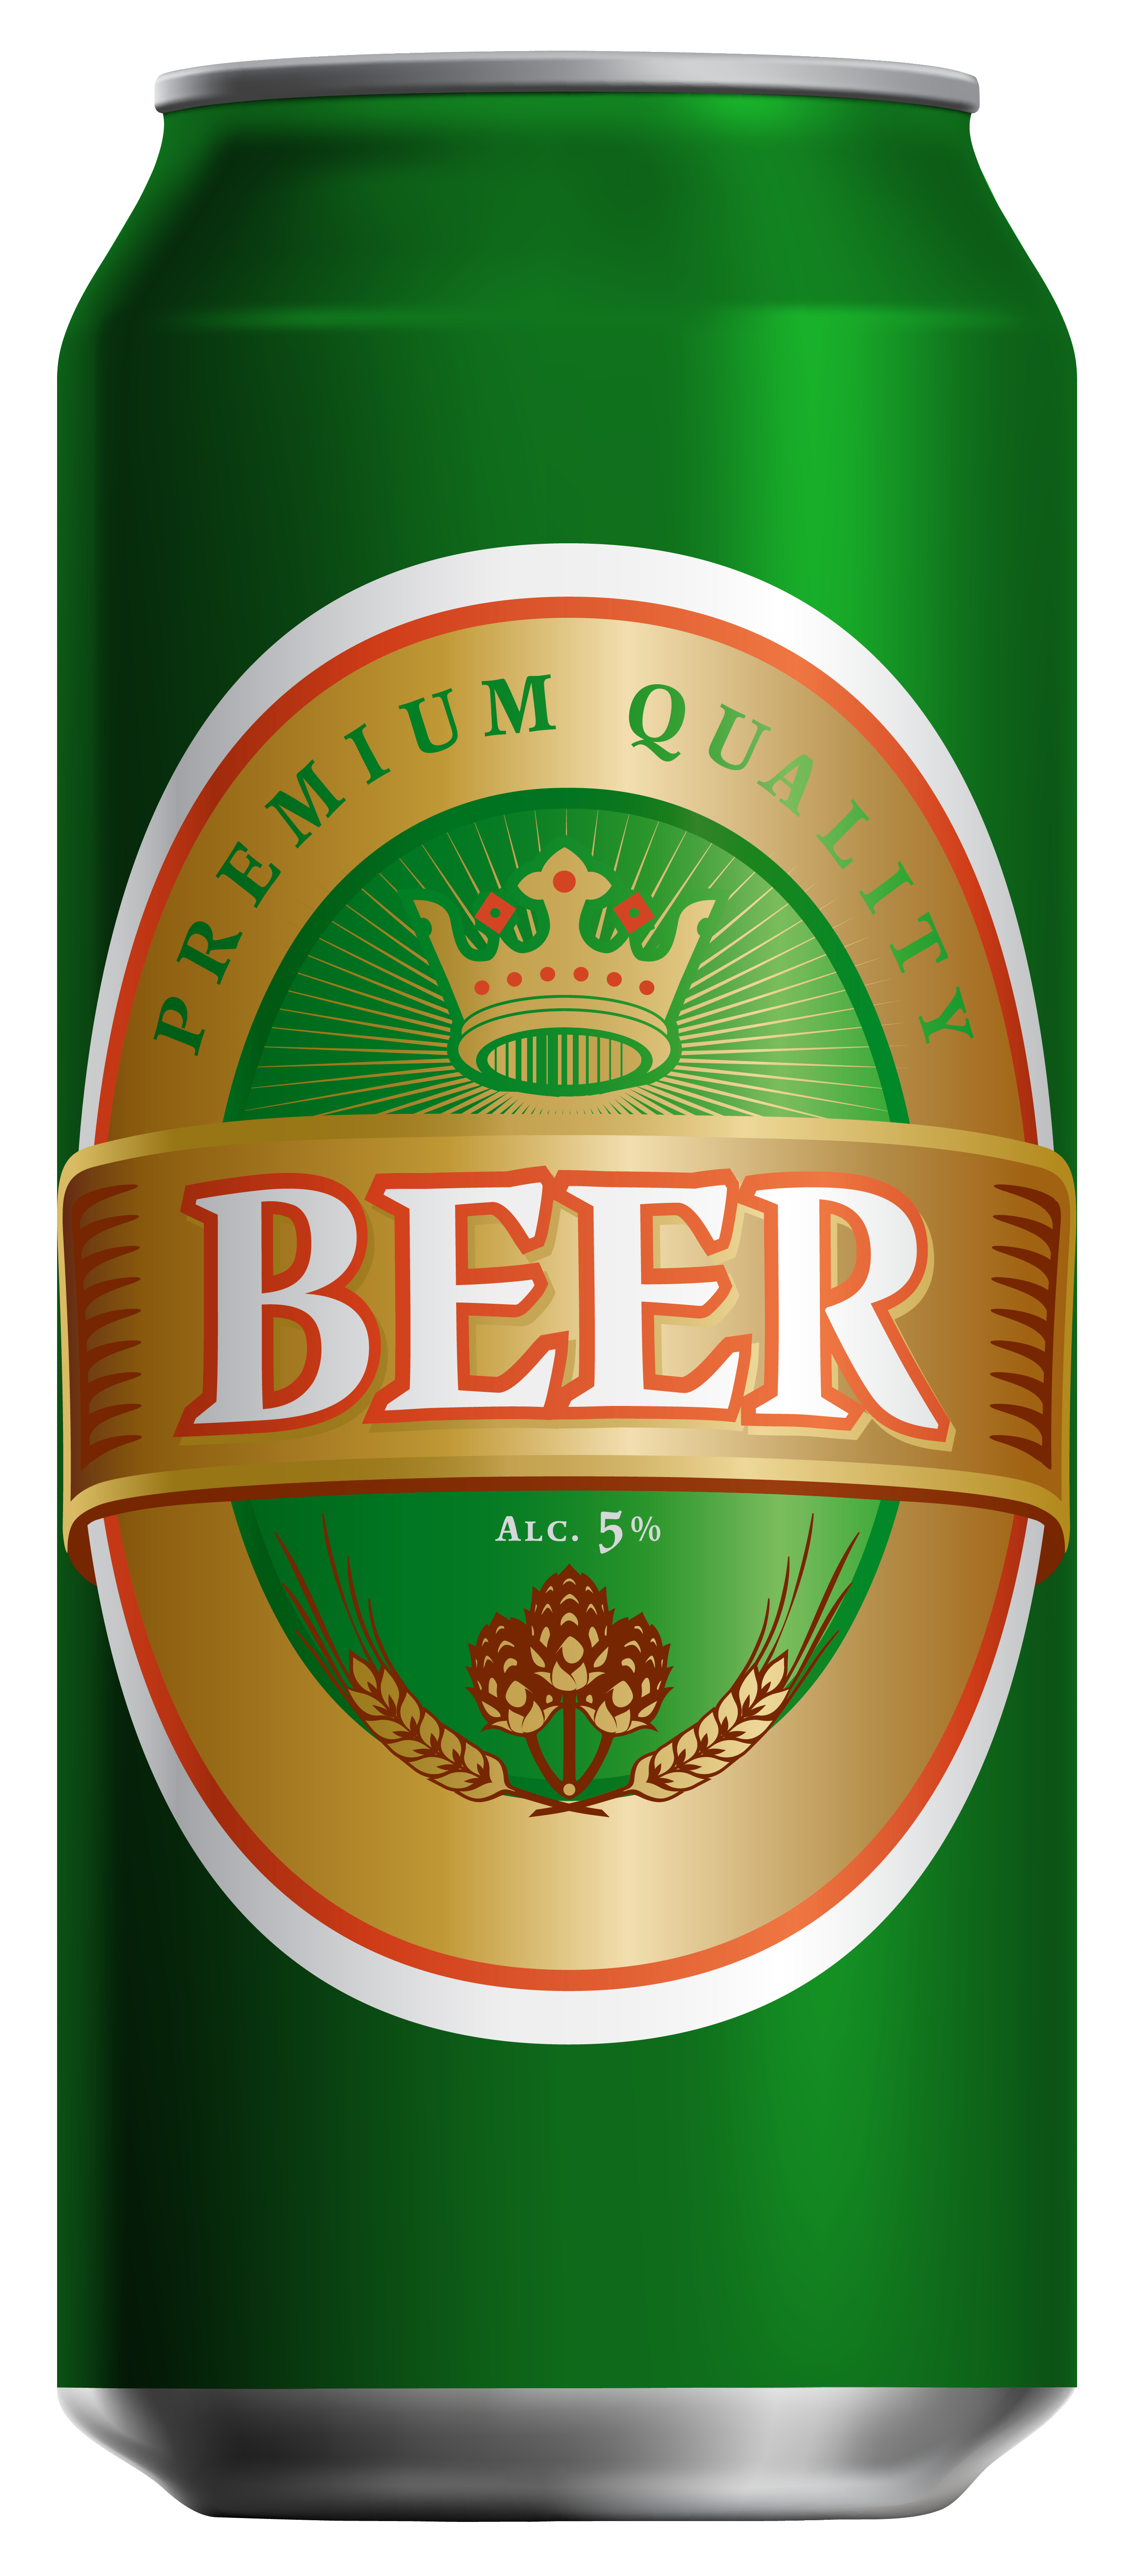 Png clip art image. Beer clipart beer can